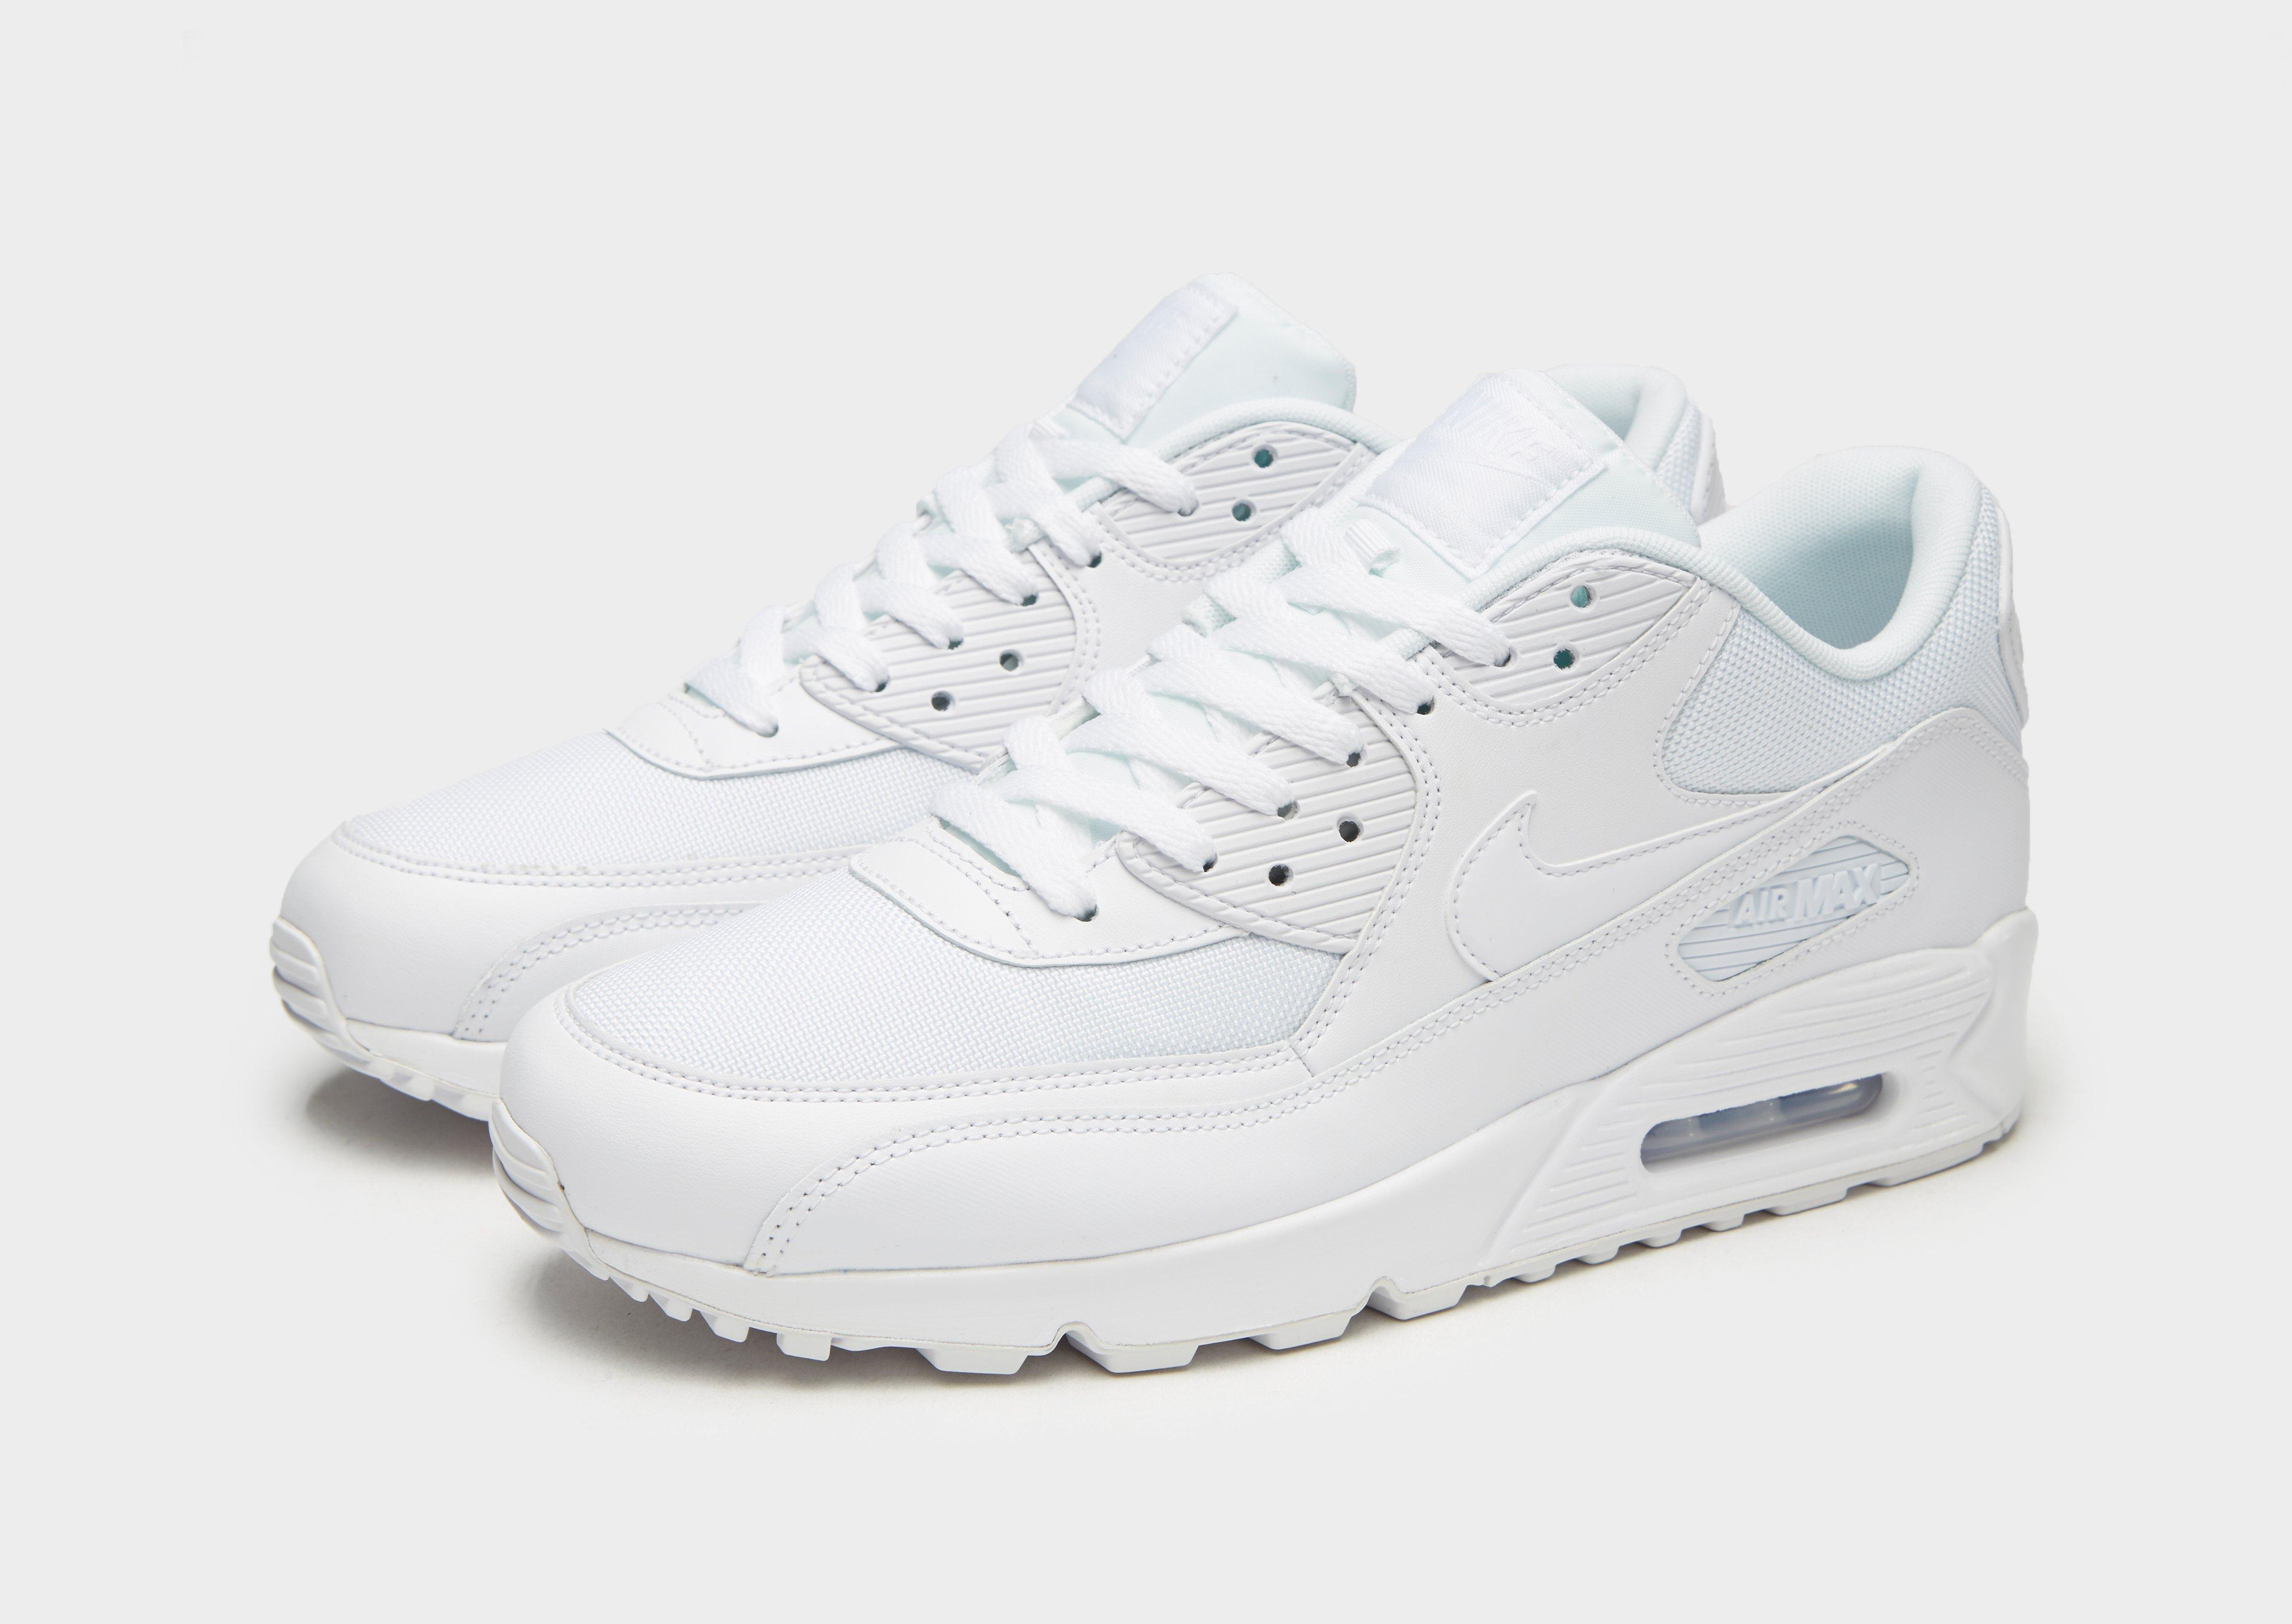 promo code 92aa7 7d555 nike air affect size 15